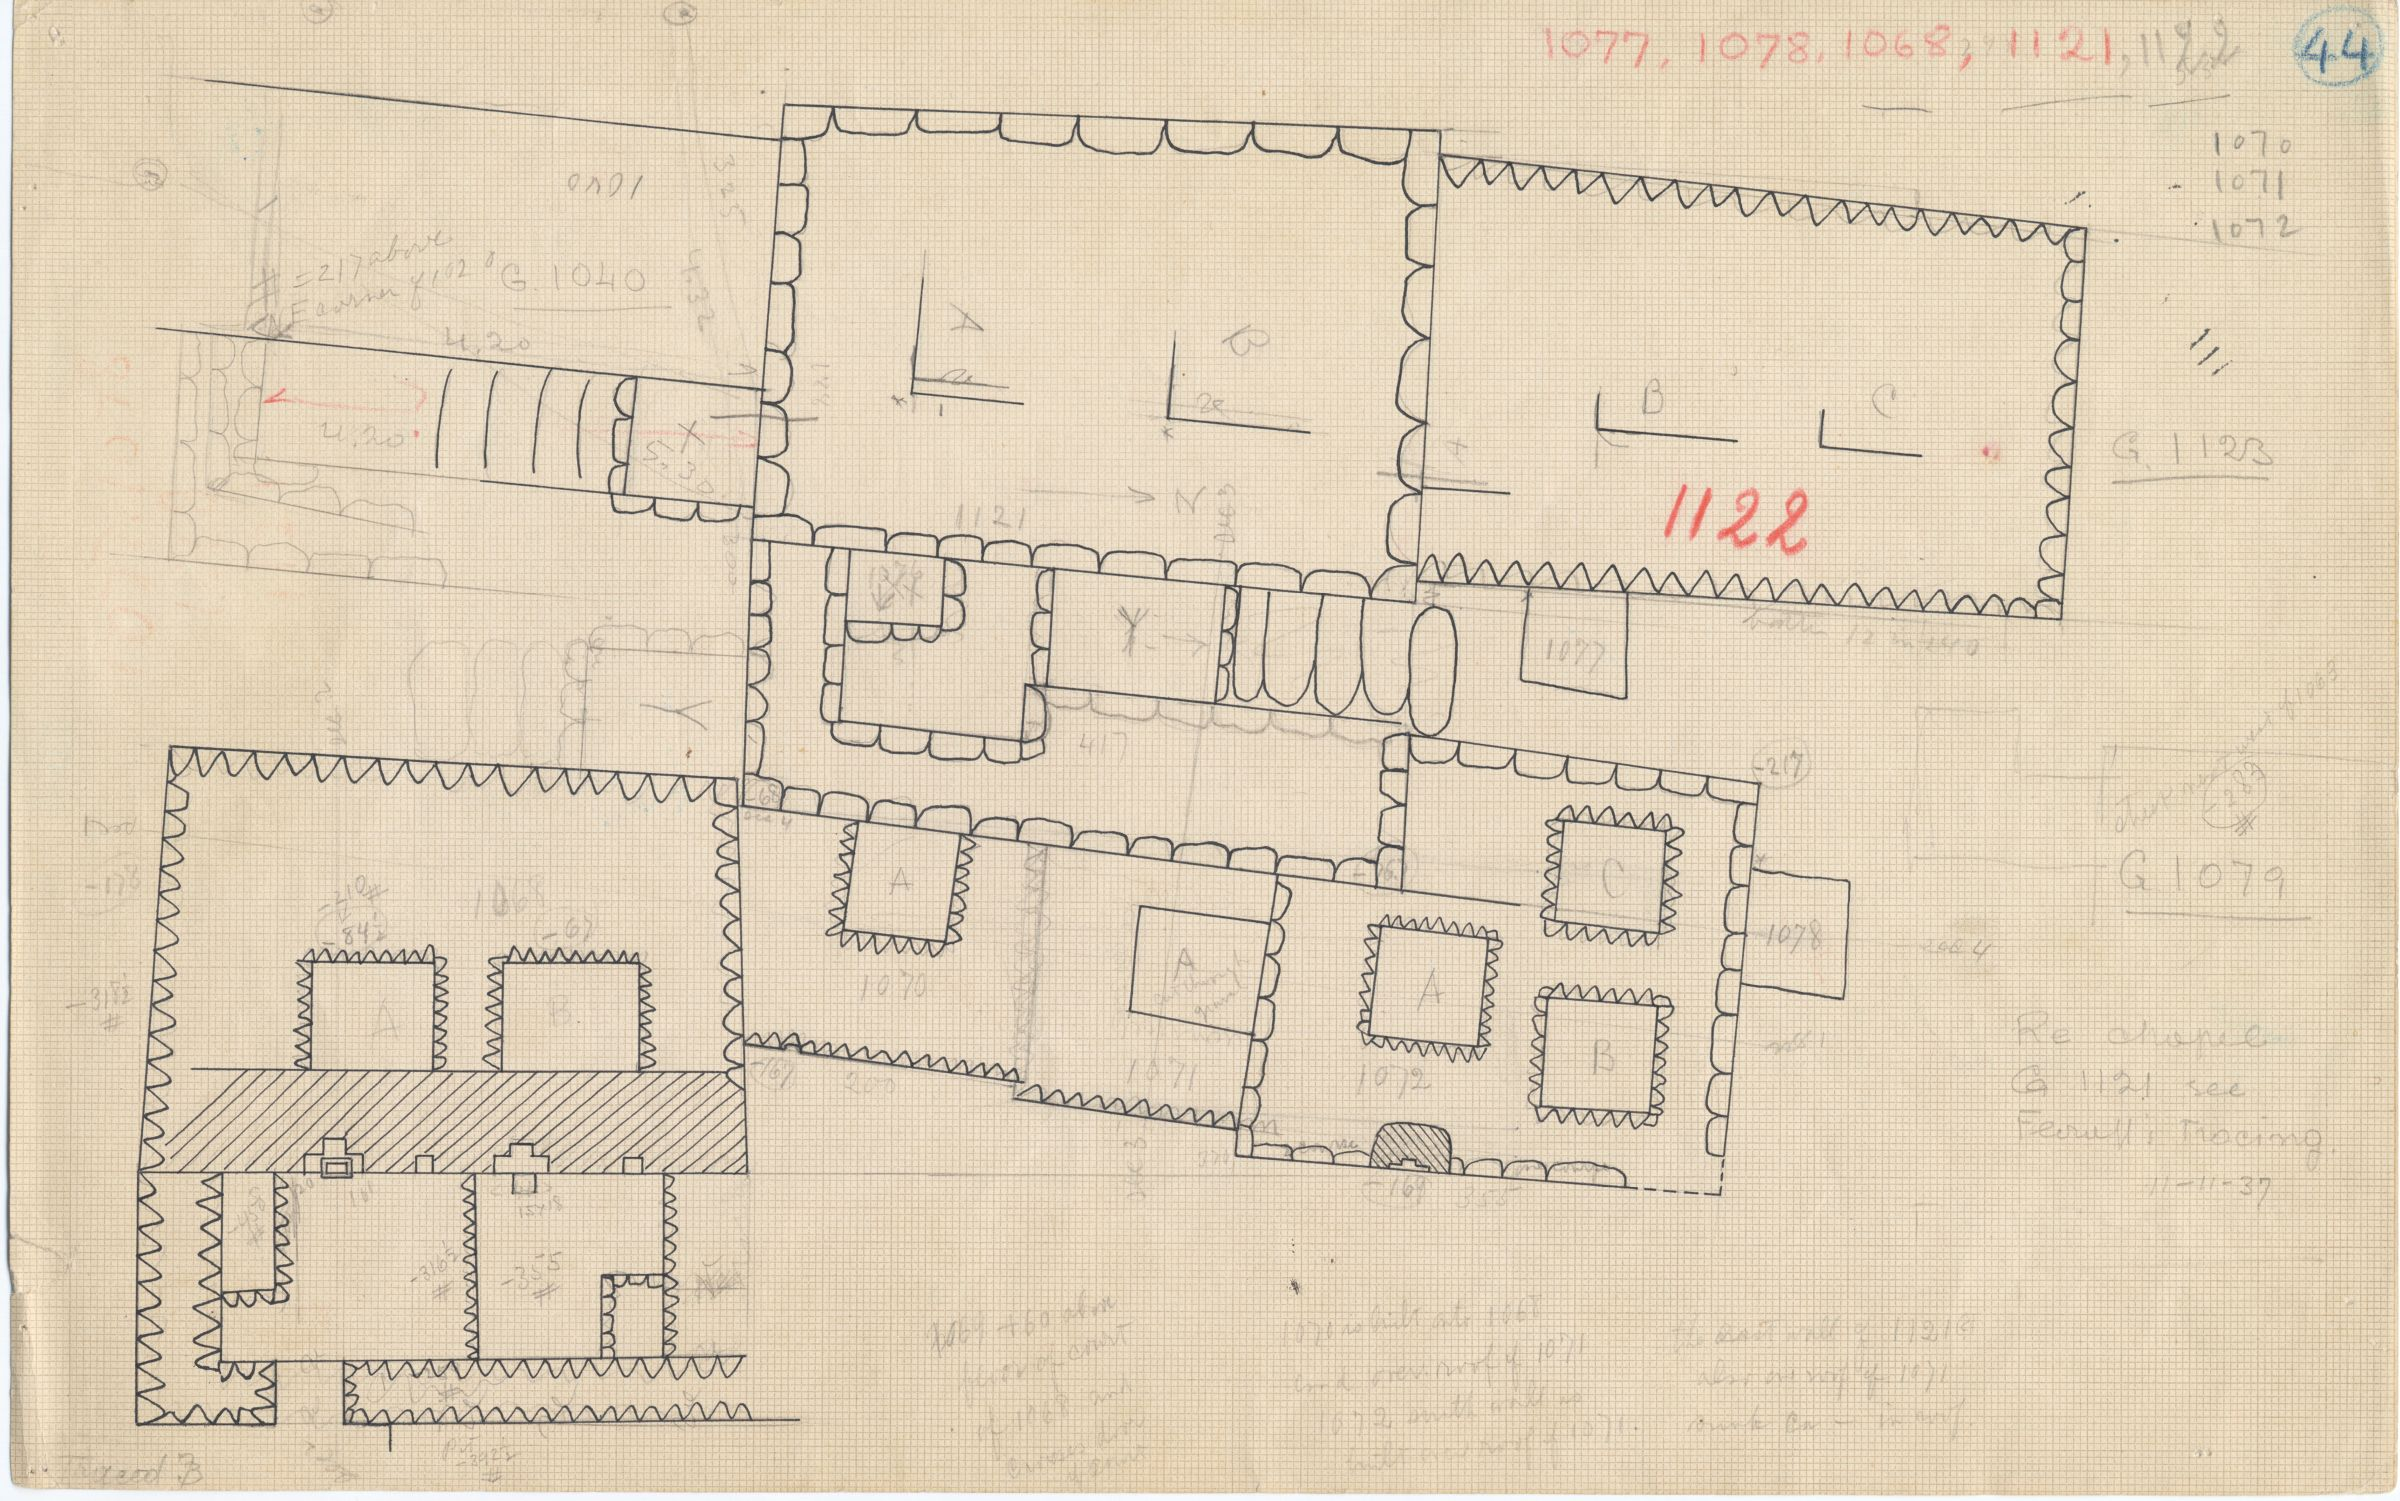 Maps and plans: Plan of G 1068, G 1069, G 1070, G 1071, G 1072, G 1076, G 1077, G 1078, G 1121, G 1122, with position of G 1040+1041